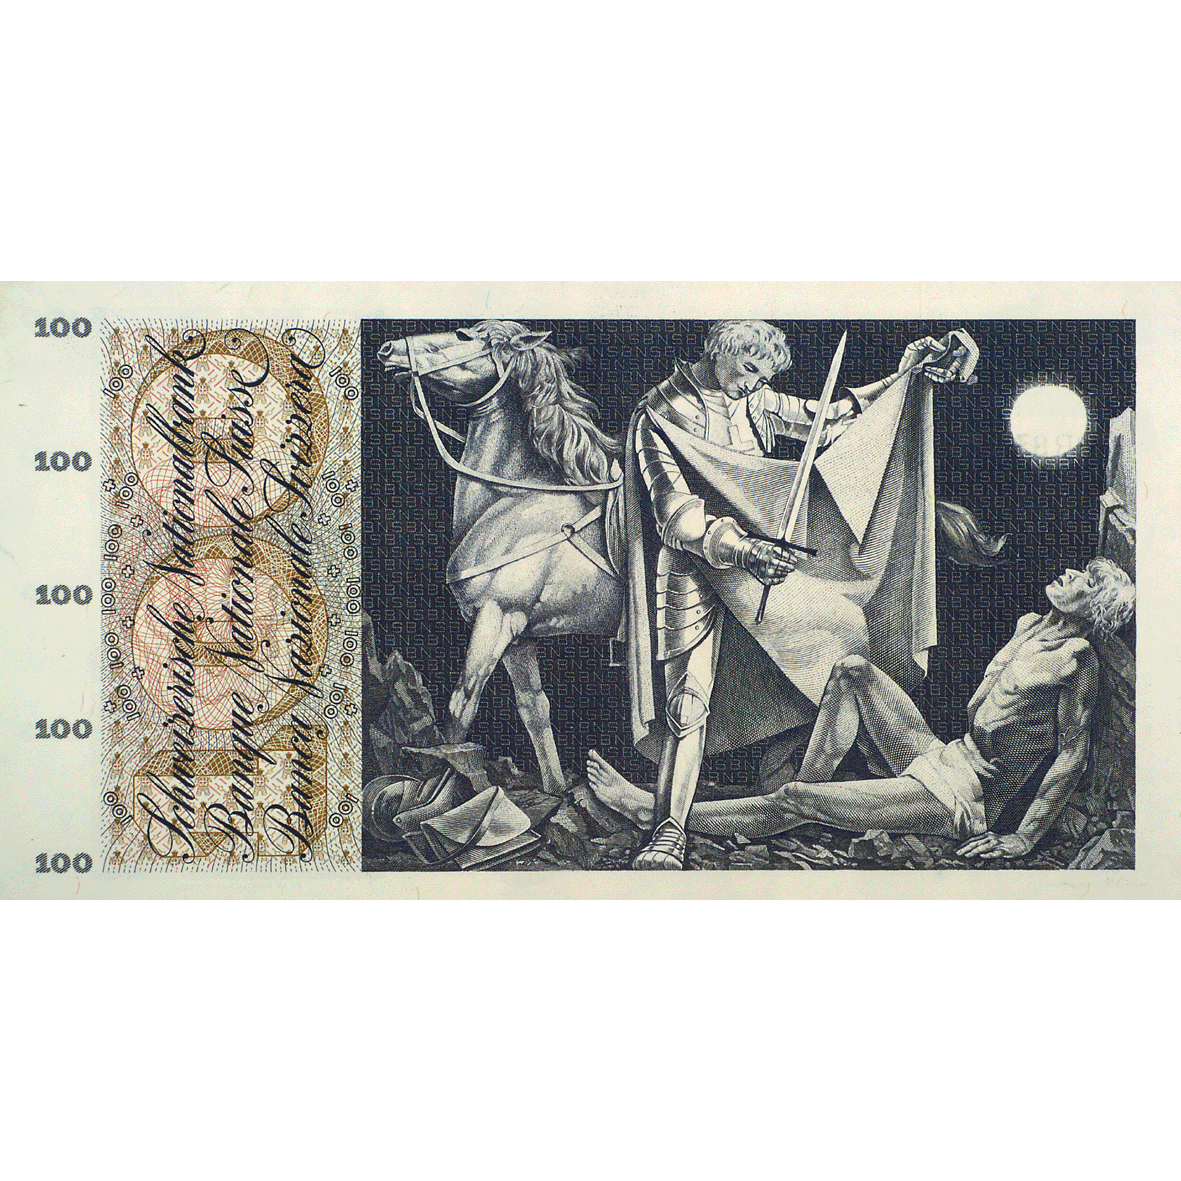 Swiss Confederation, 100 Francs (5th Banknote Series, in Circulation 1956-1980) (reverse)